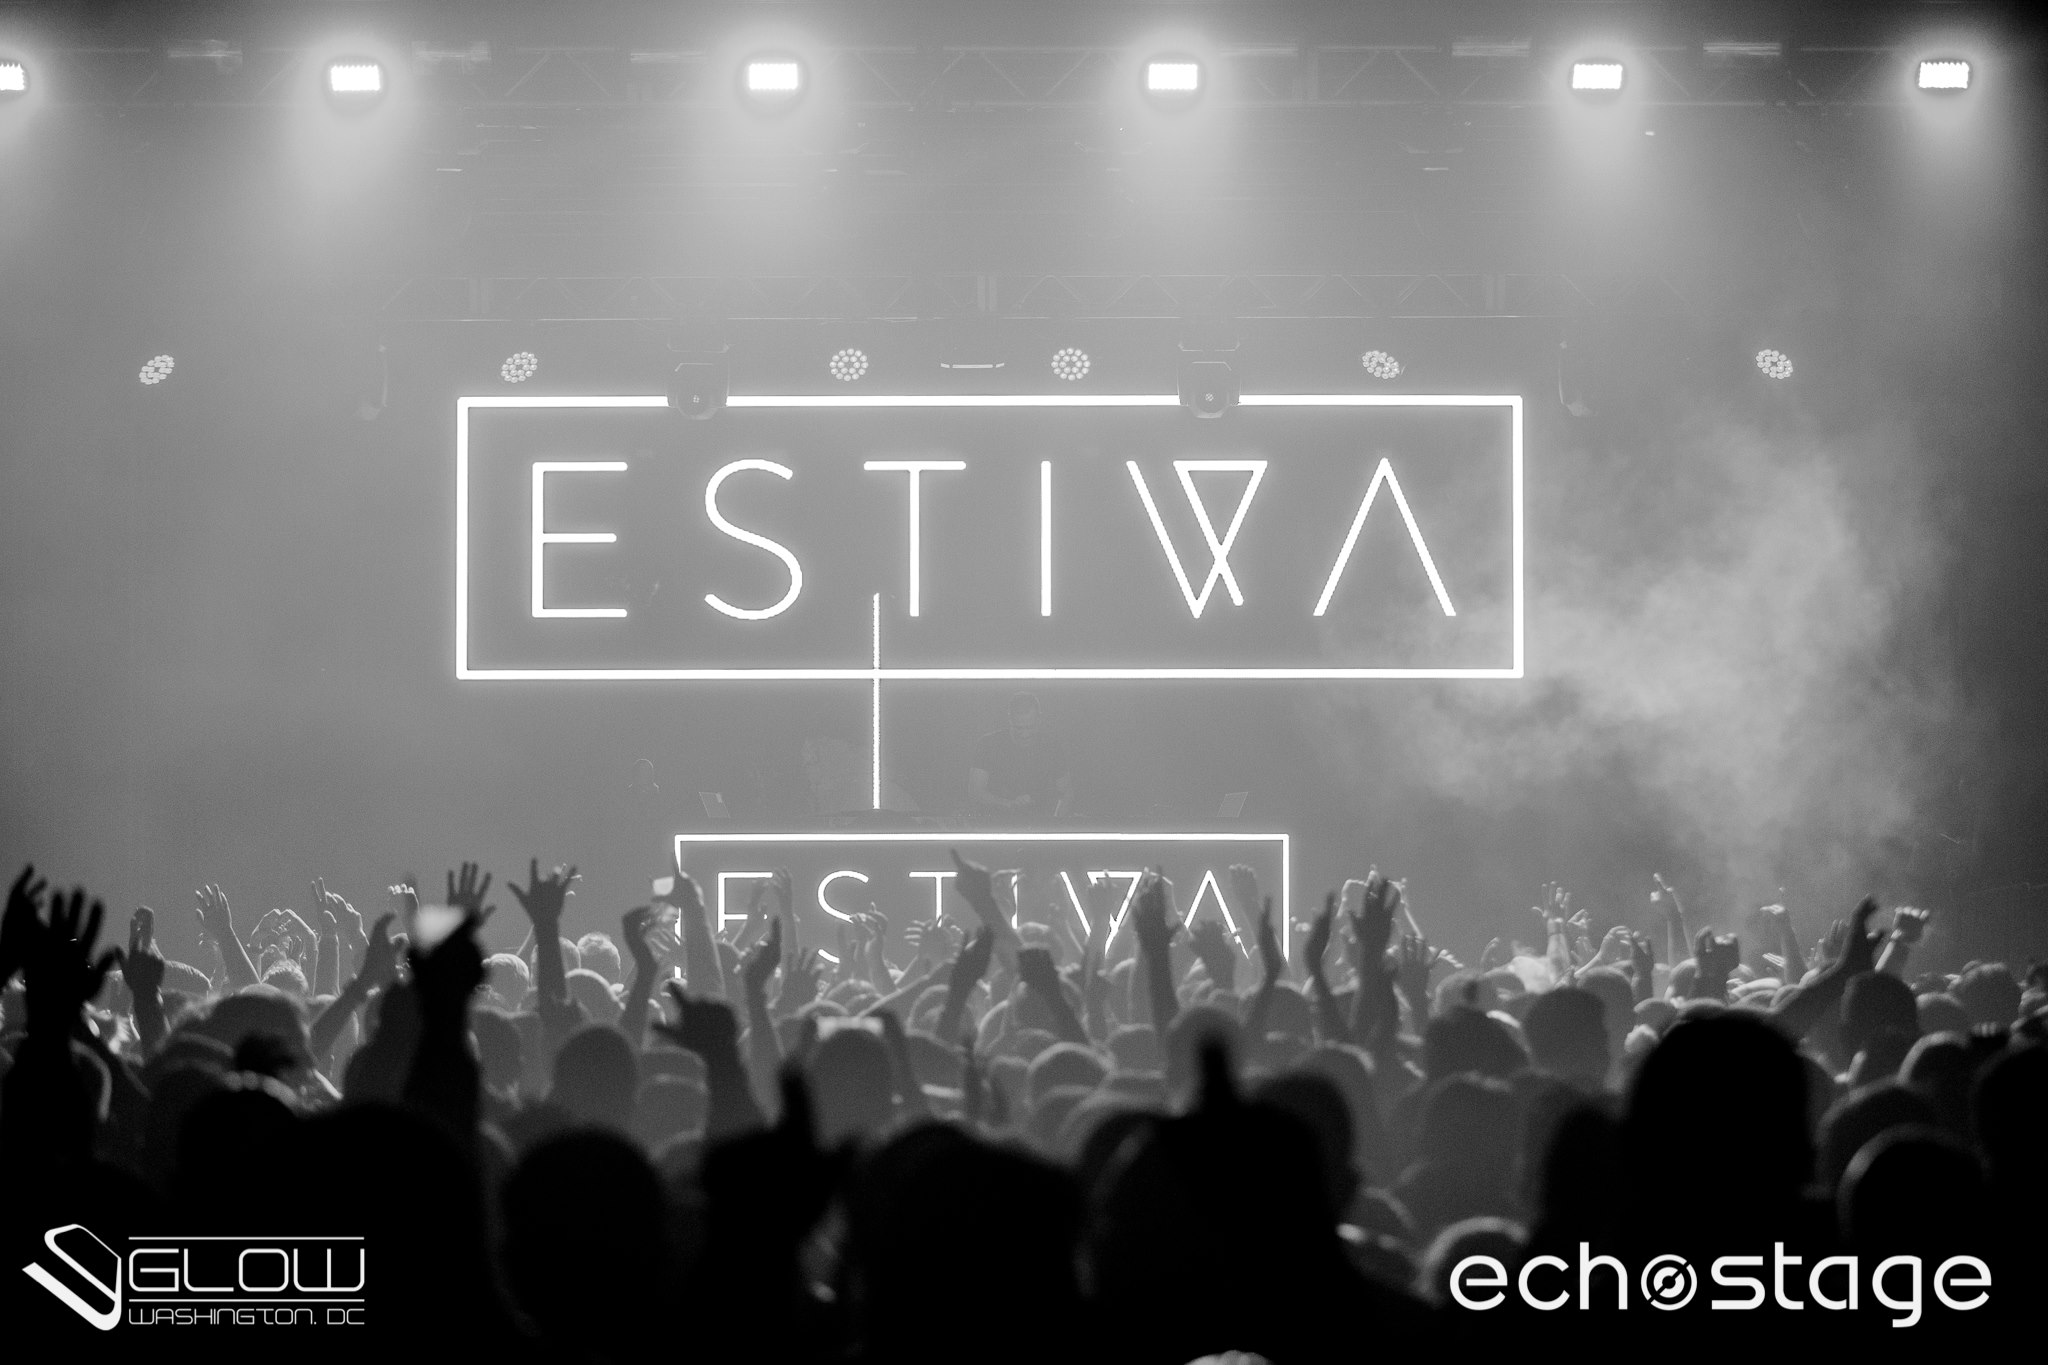 Estiva © Echostage - Washington, DC